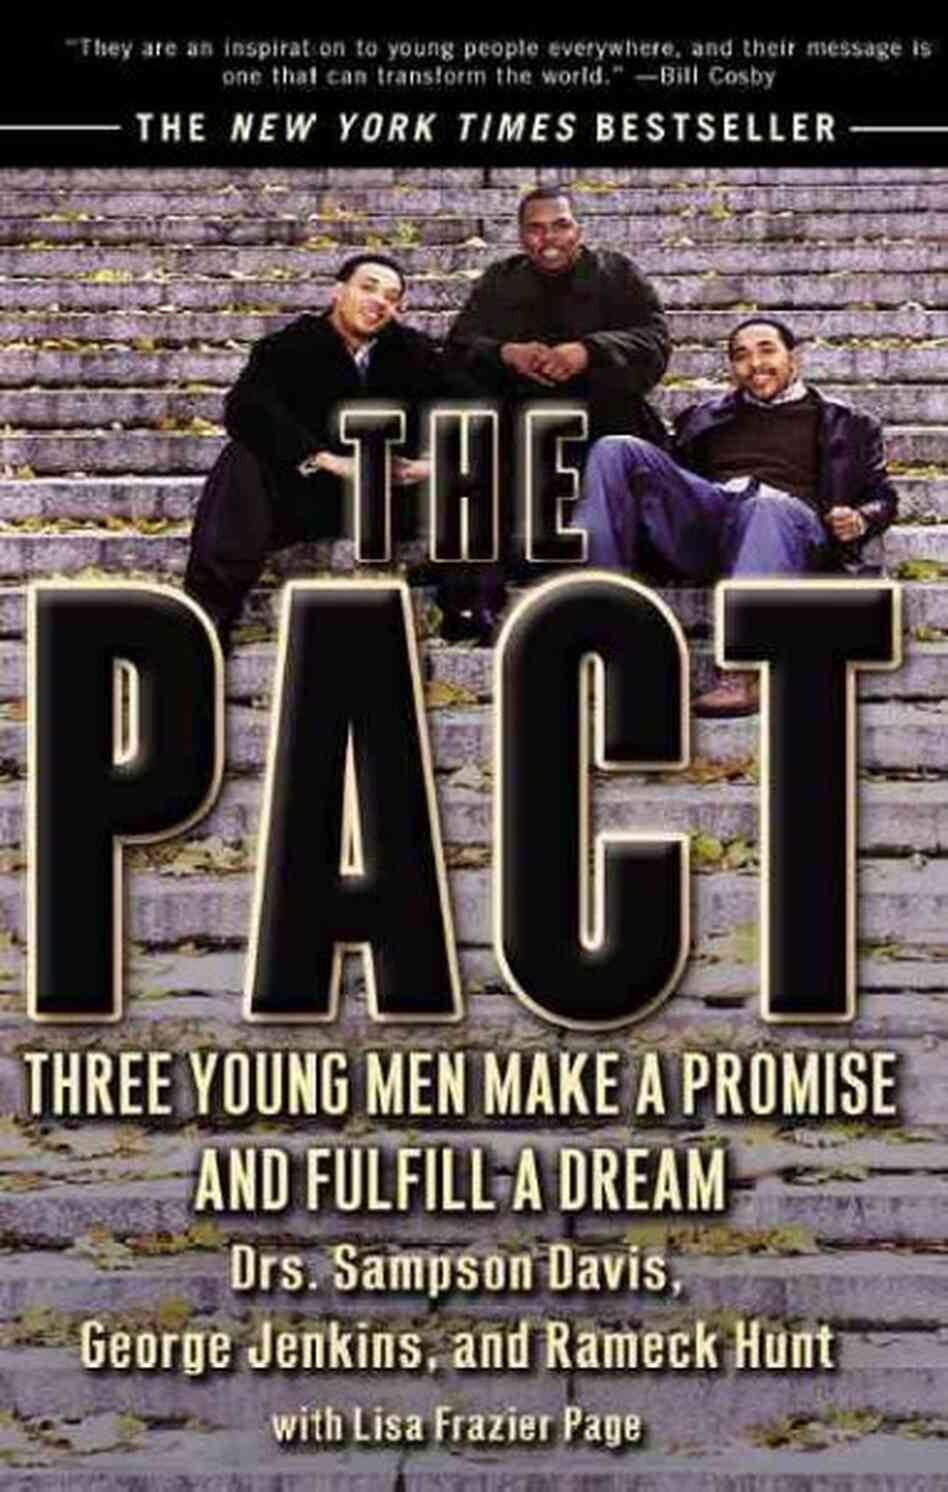 the pact rameck hunt essay Reading the pact by drs sampson davis and rameck hunt with lisa frazier page just send your request for getting no plagiarism essay order here.